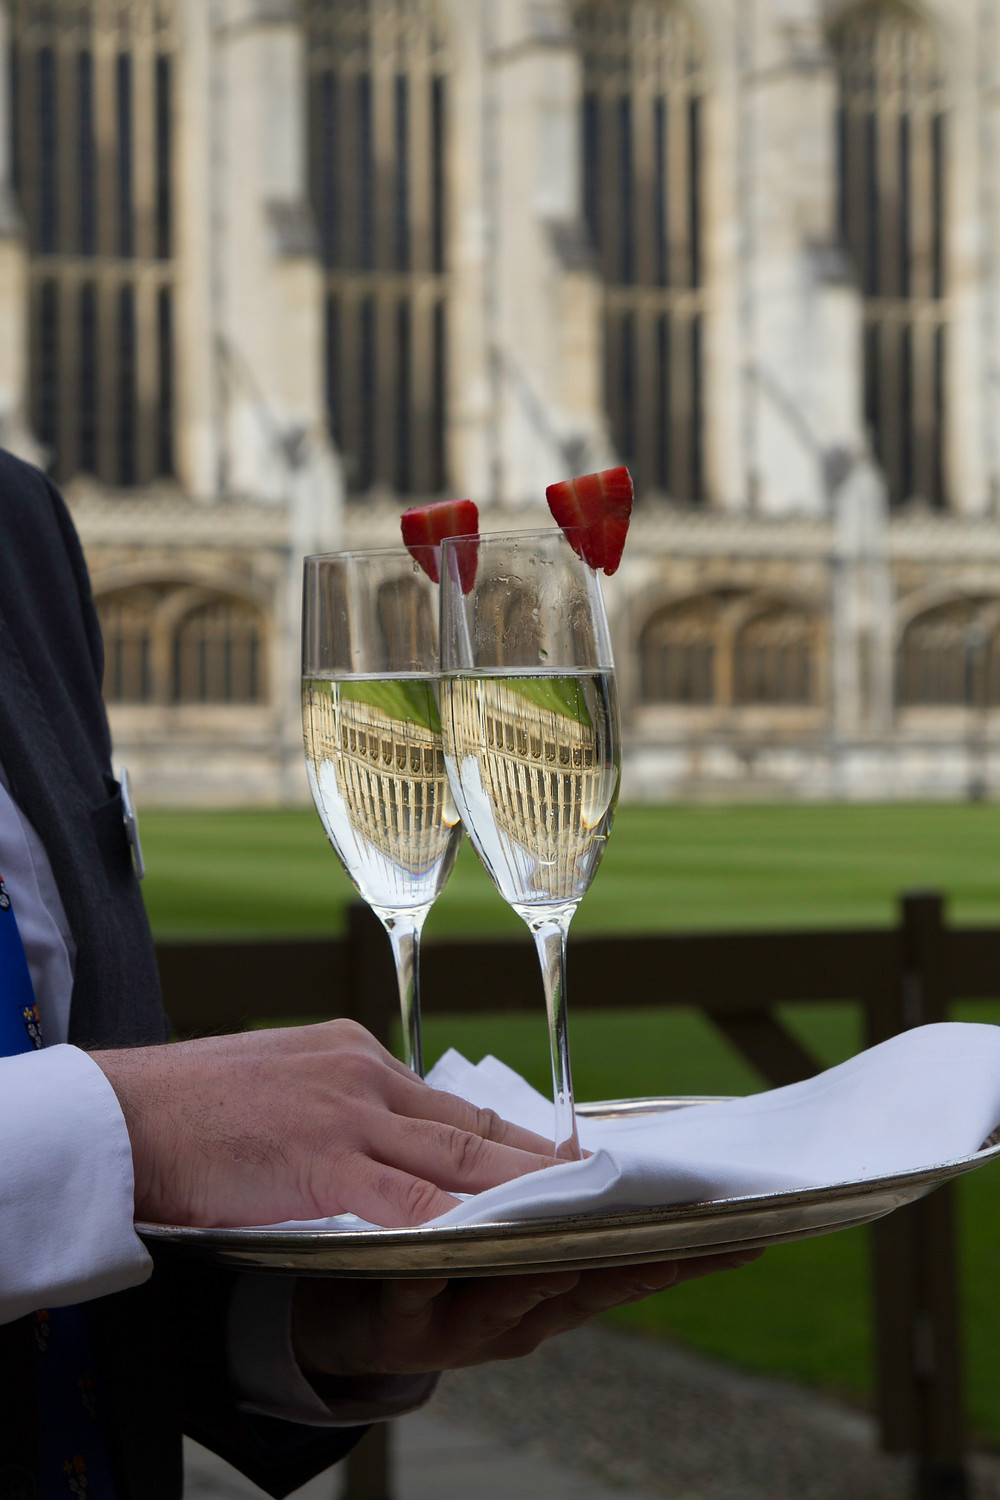 two champagne glasses with Kings college chapel reflected in the glasses - held by waiter who is only partially shown.